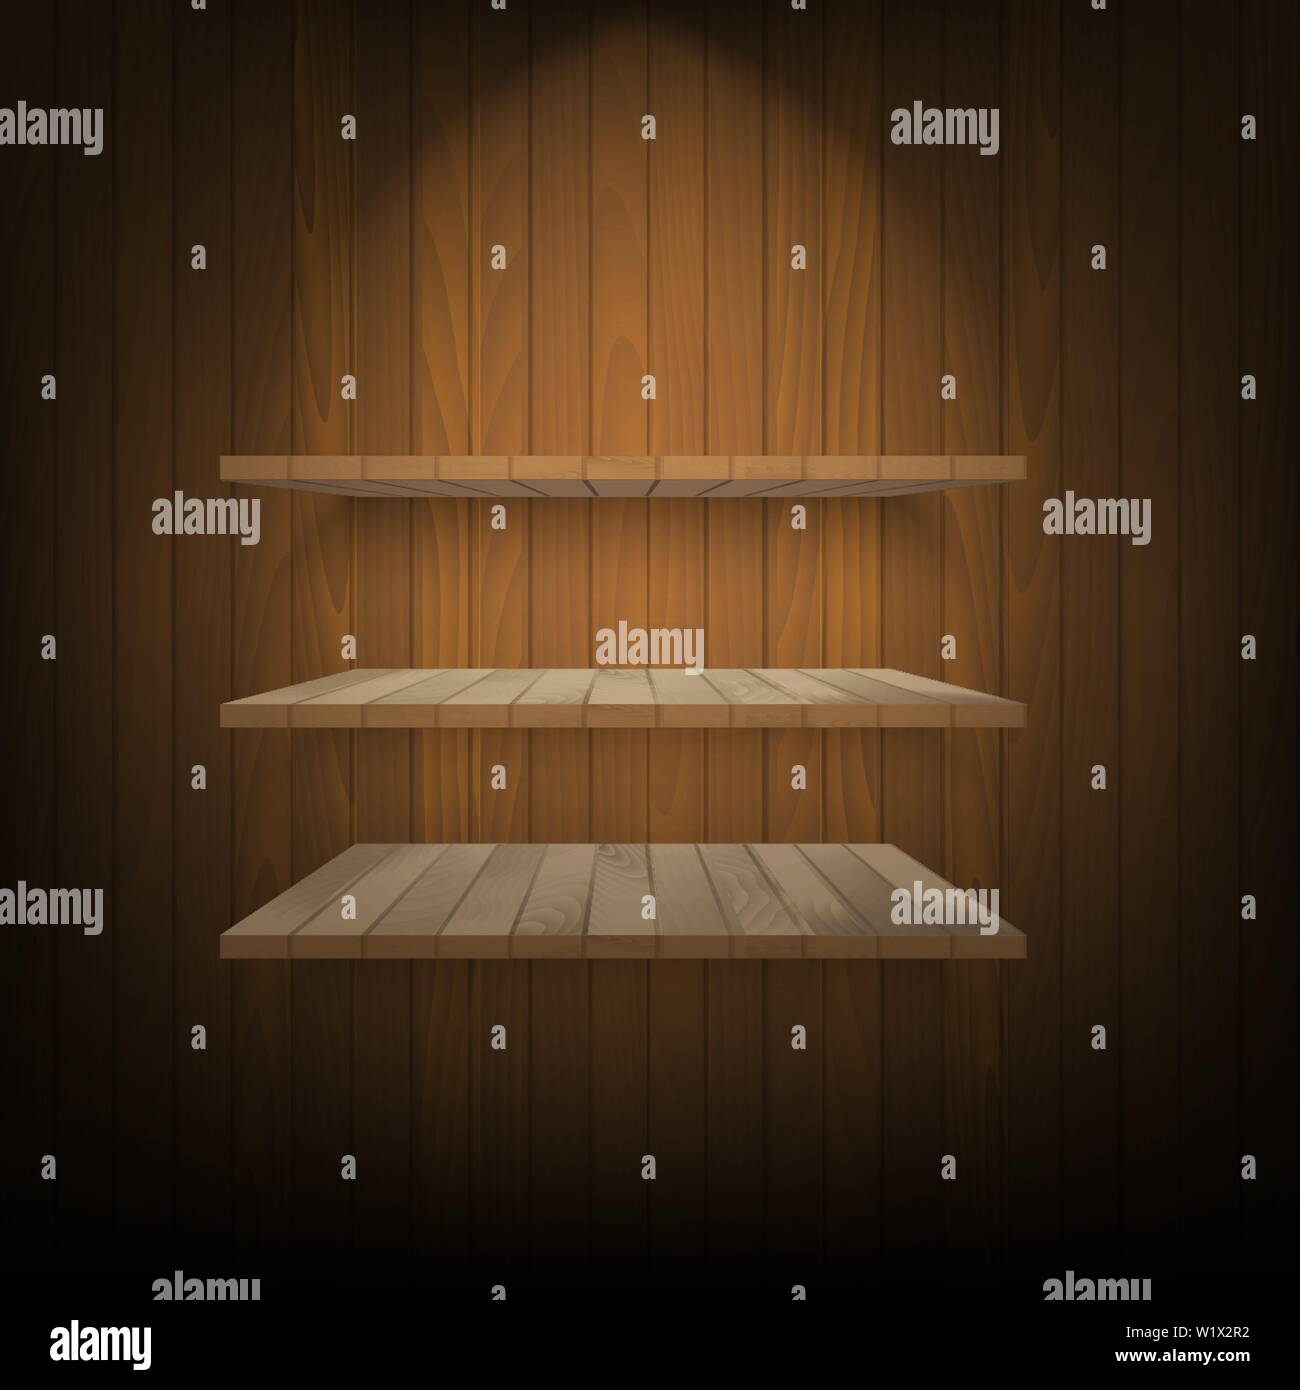 Brown shelves with soft light on wooden wall. Vector. Stock Vector